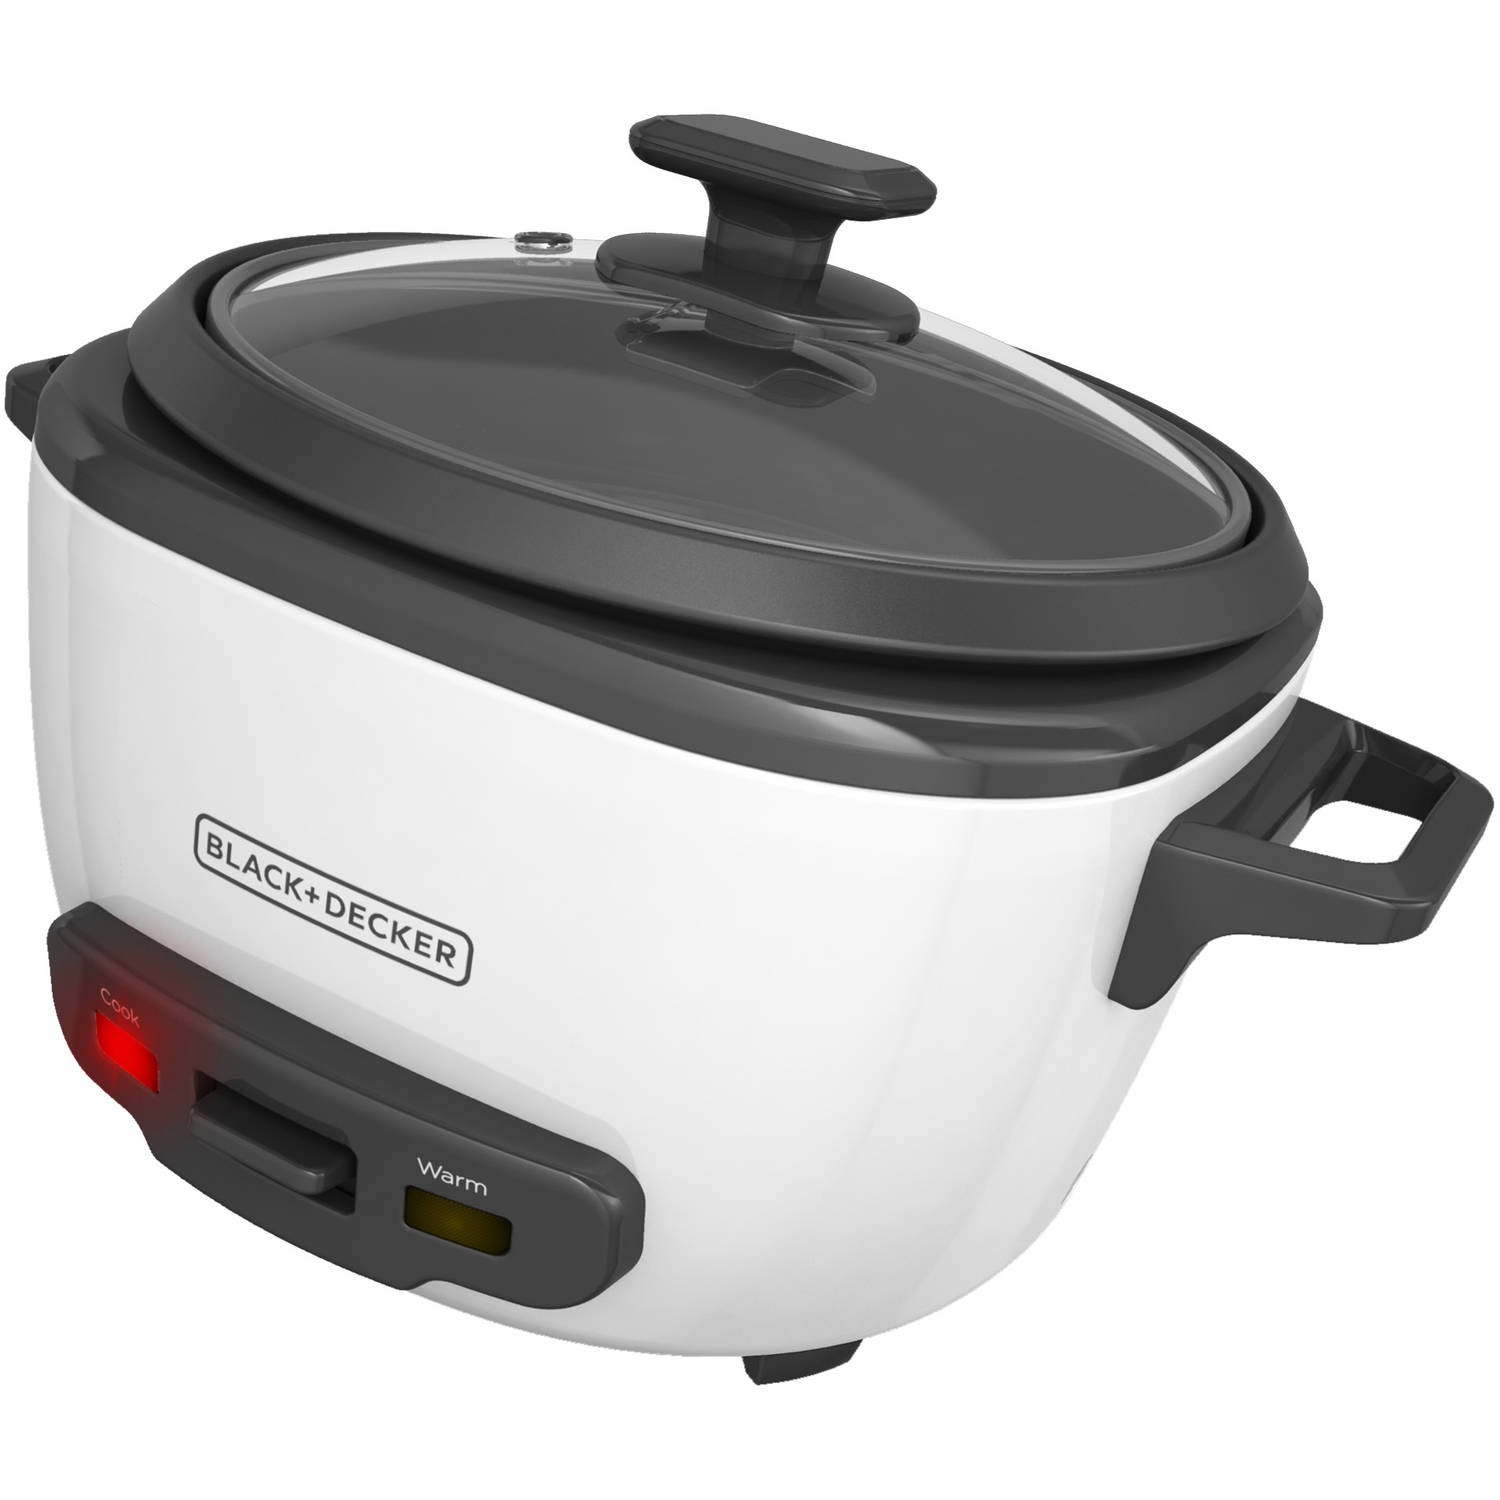 BLACK+DECKER 14-Cup Rice Cooker and Steamer Basket, RC514